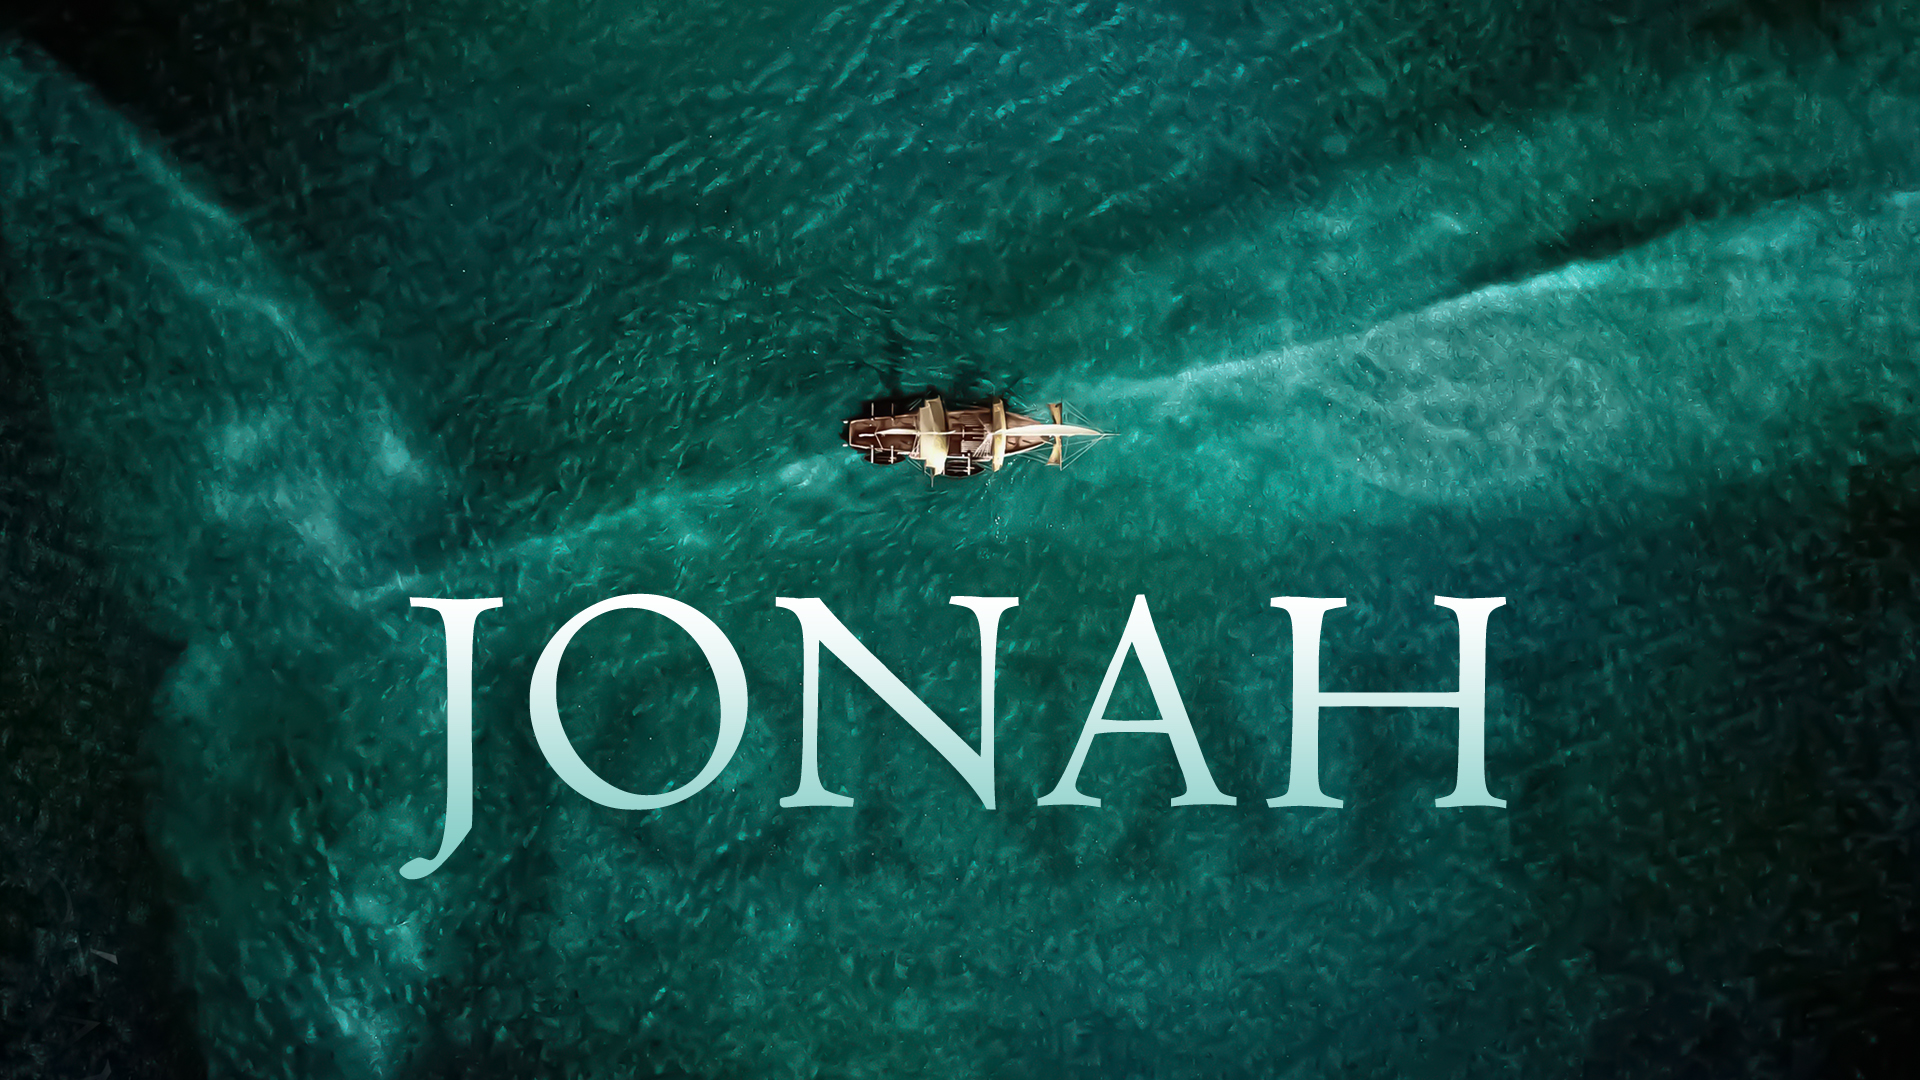 Jonah-Sermon-Series-Idea.jpg